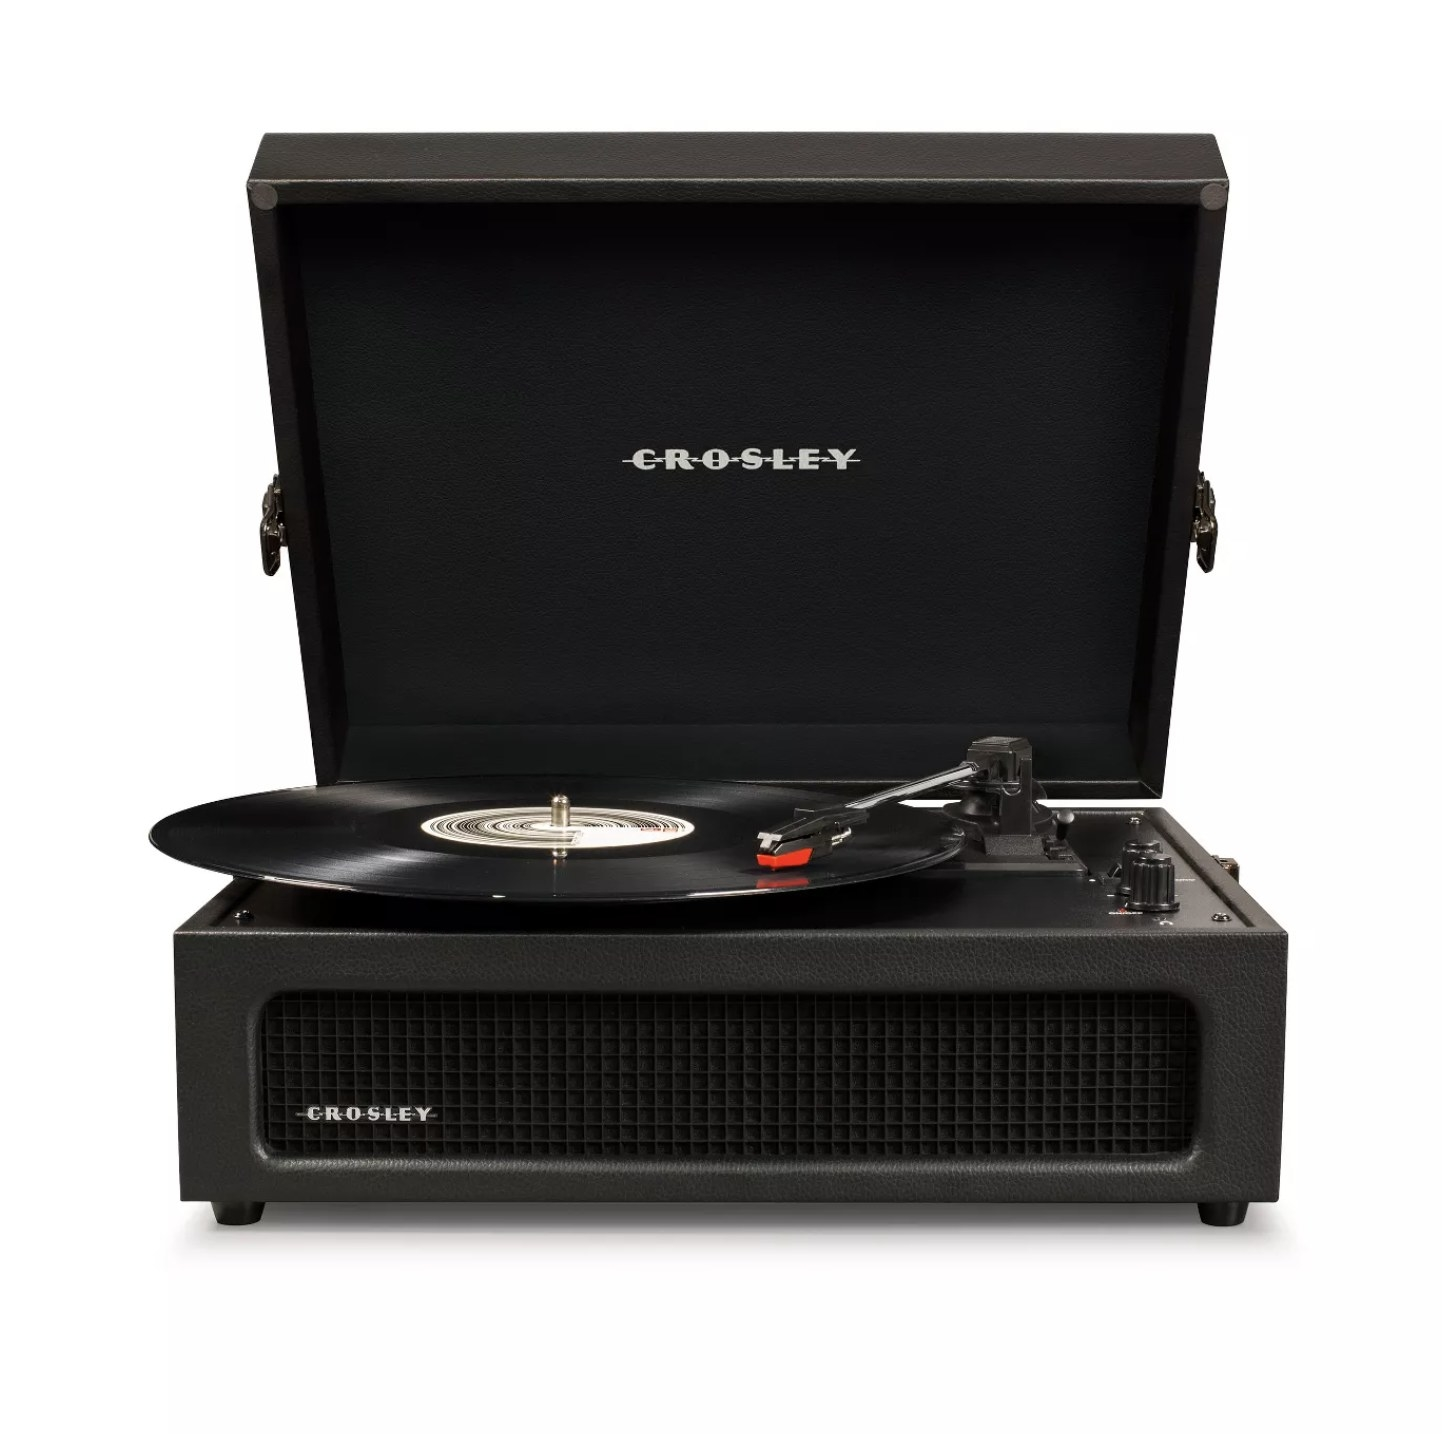 A black vintage-style turntable with a vinyl record on it